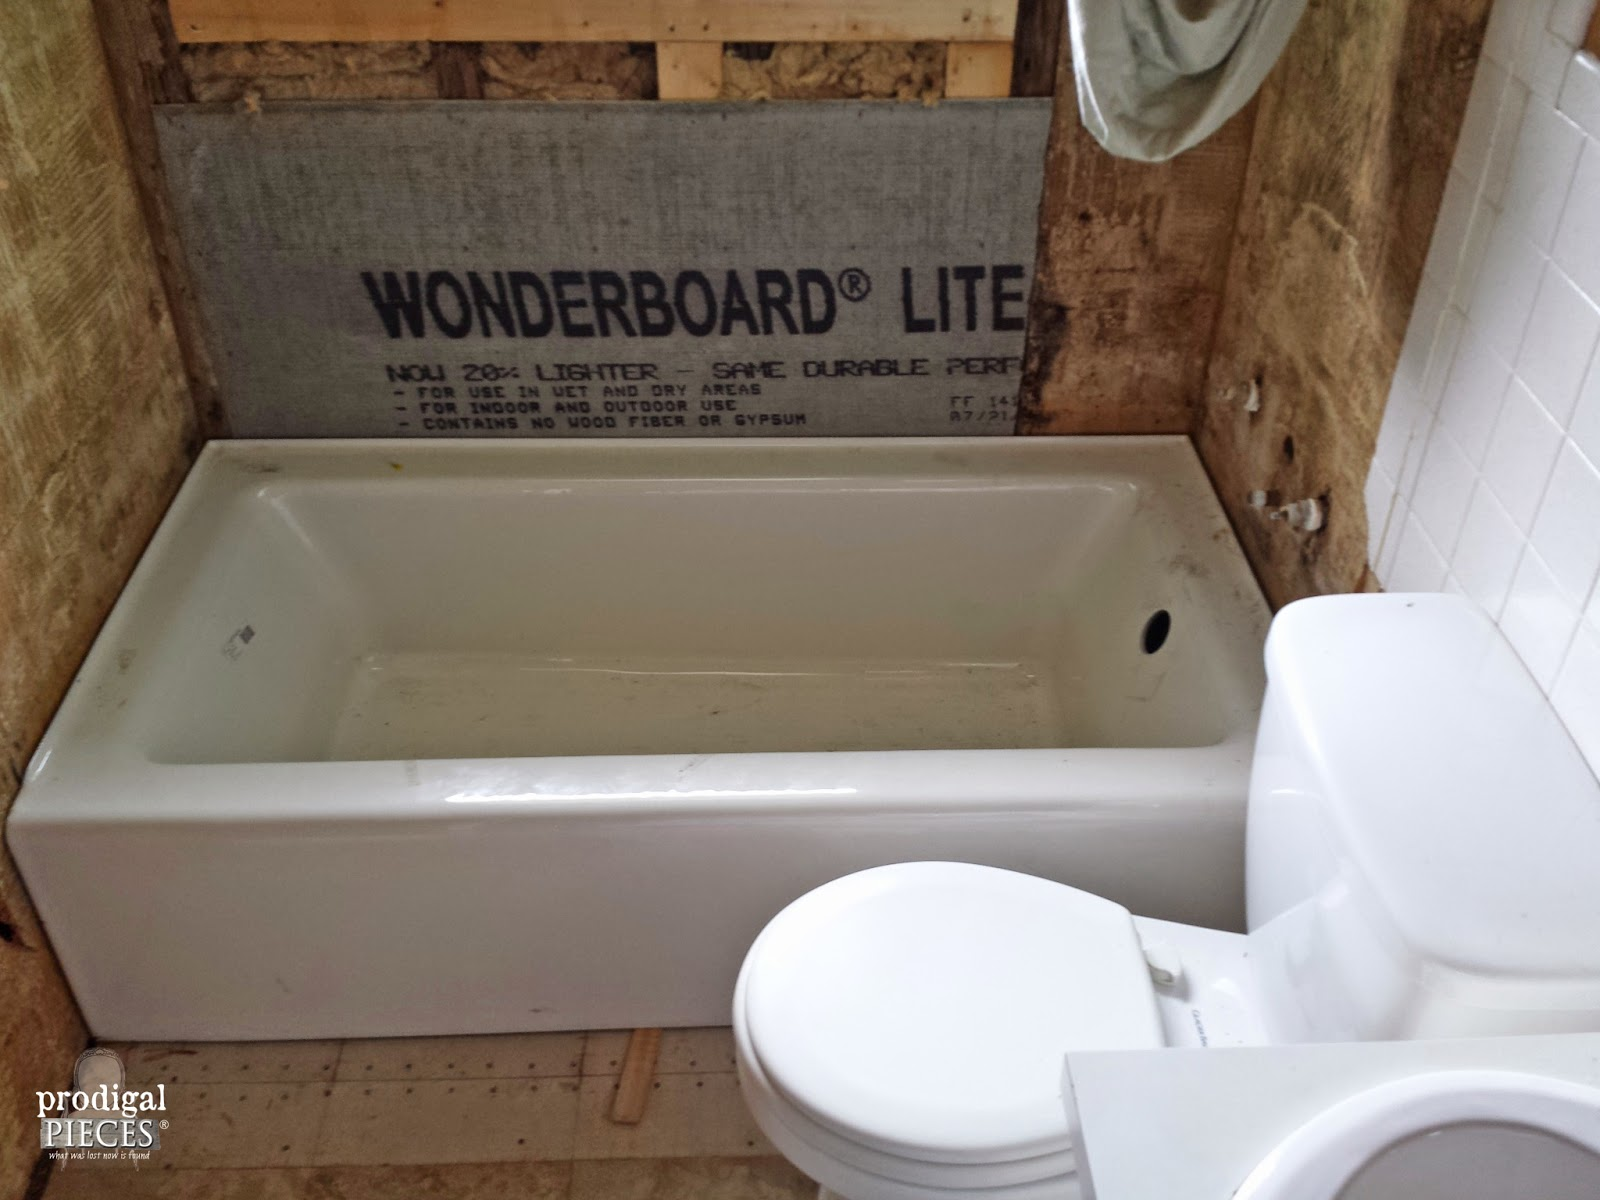 Bathroom Makeover DIY Farmhouse Style: Part 1 by Prodigal Pieces http://www.prodigalpieces.com